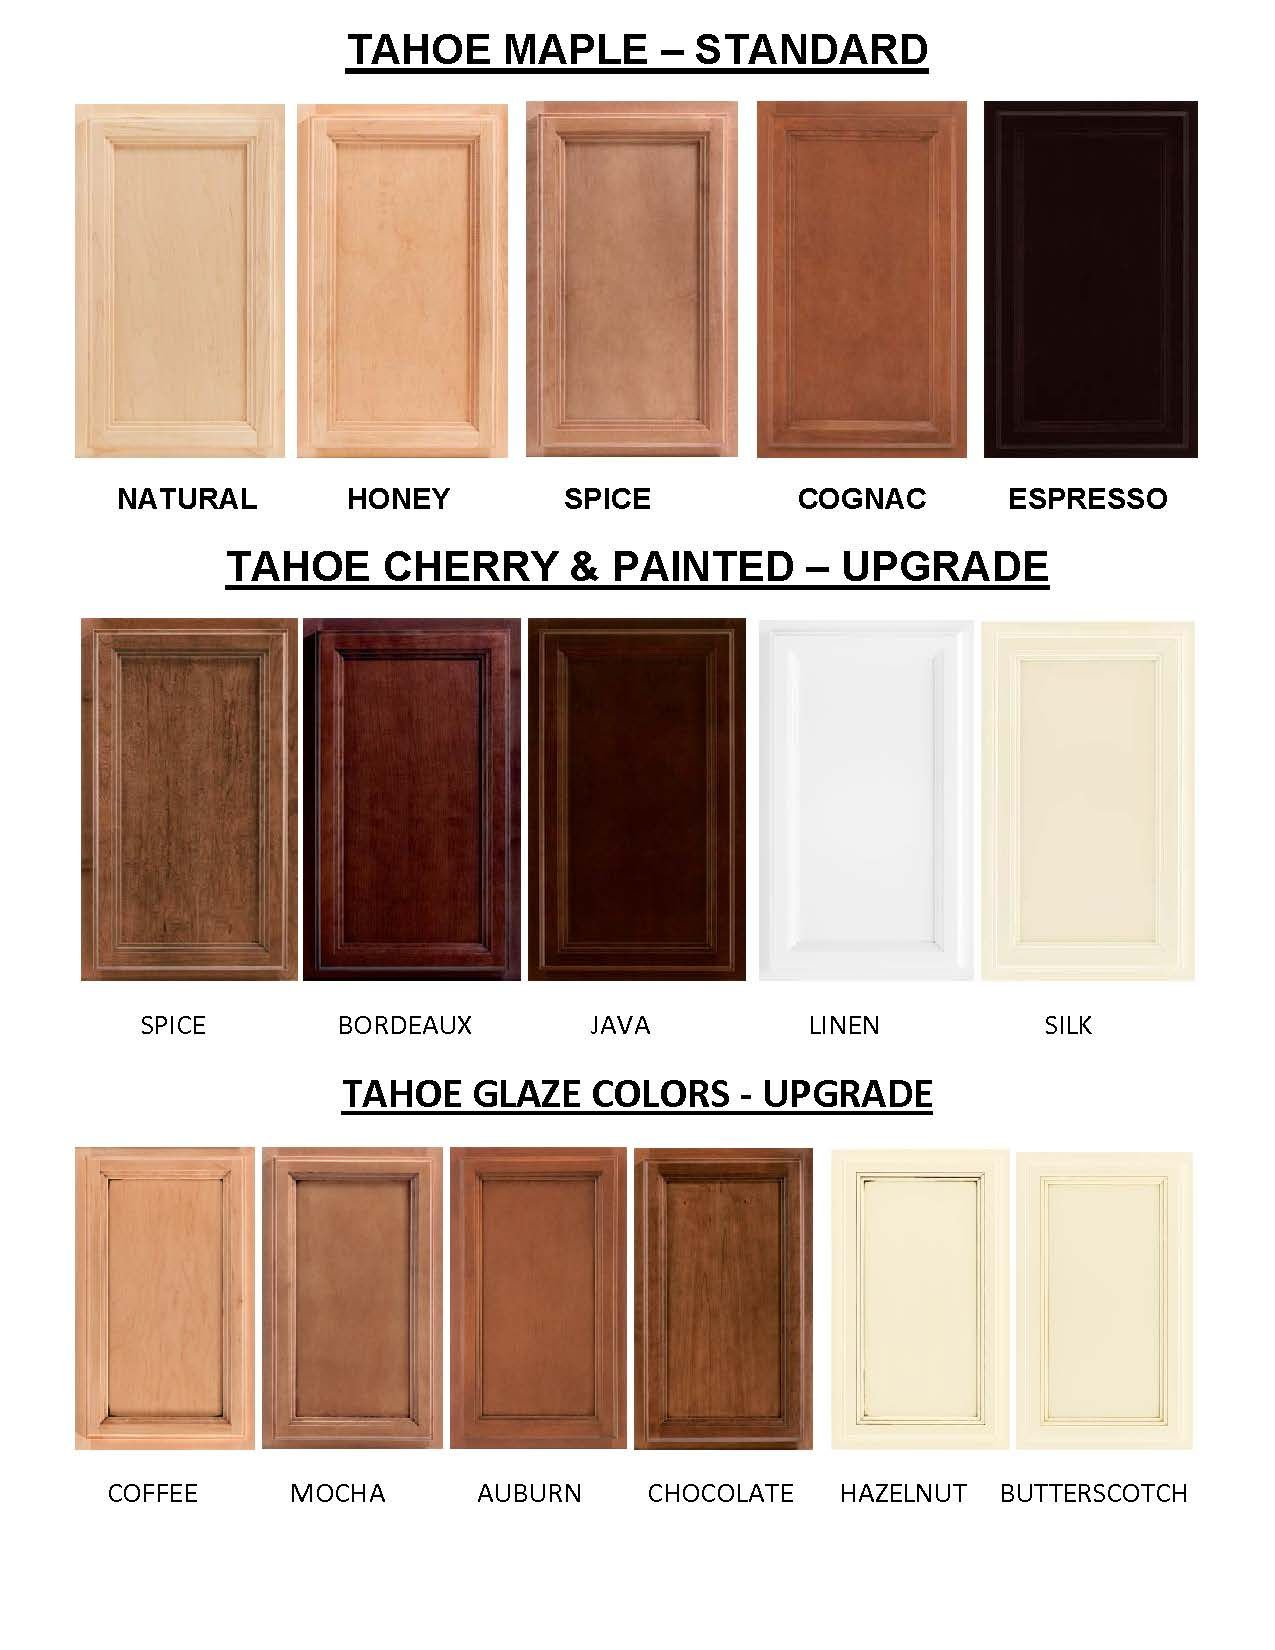 TAHOE Cabinet Colors: Tahoe Maple Cabinet Colors Are The Standard For  Windsong Properties. This